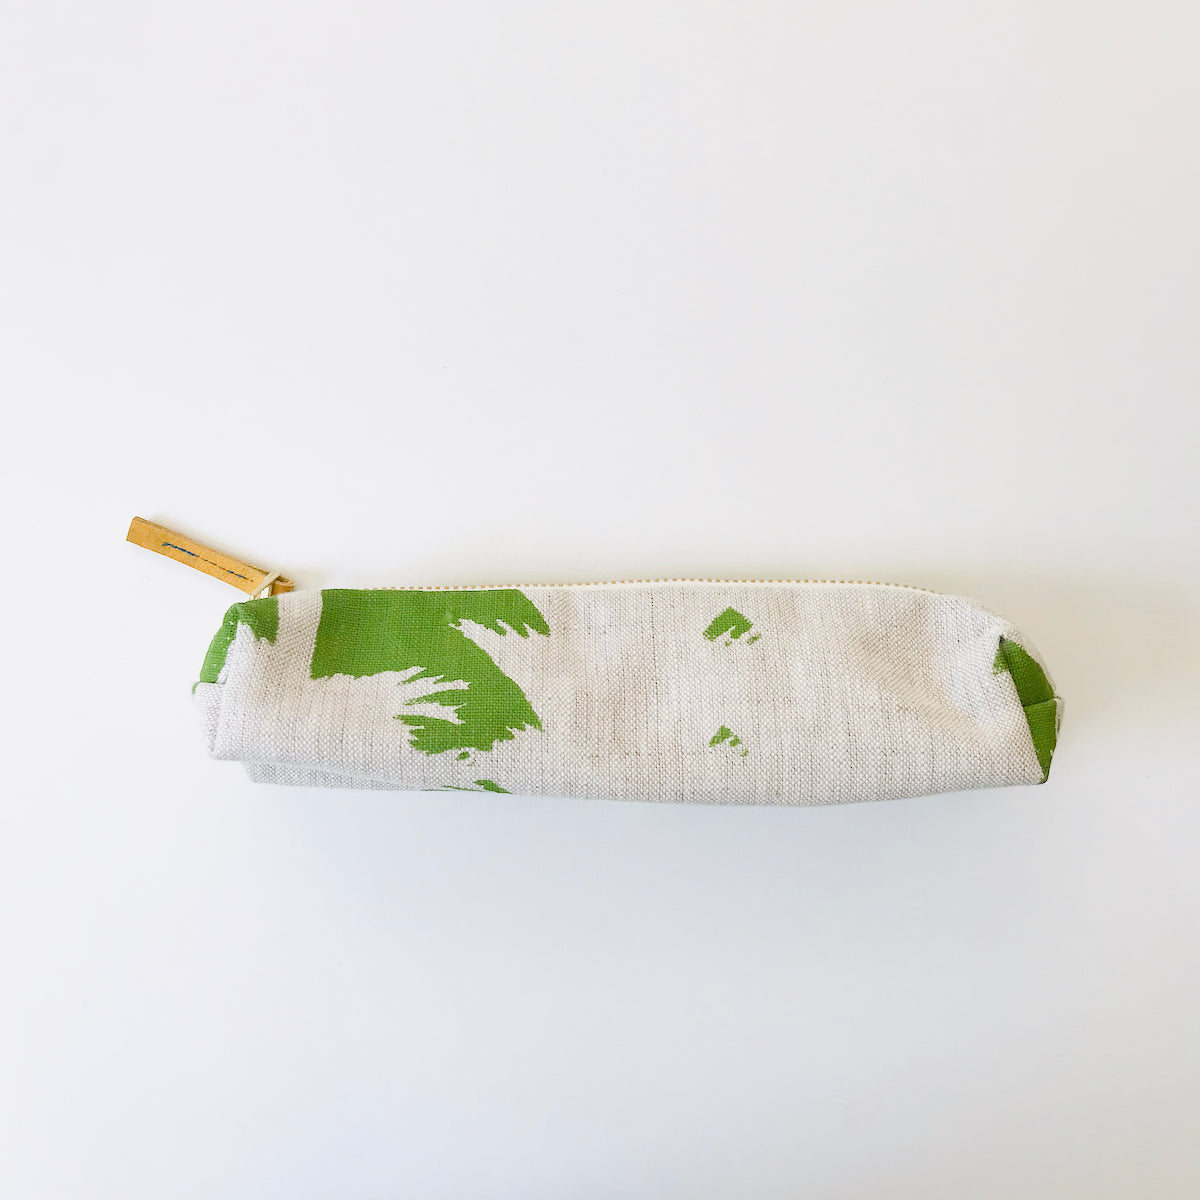 SHIPS NOW! EVERGREEN ASHLEY PINE PENCIL ZIPPER BAG